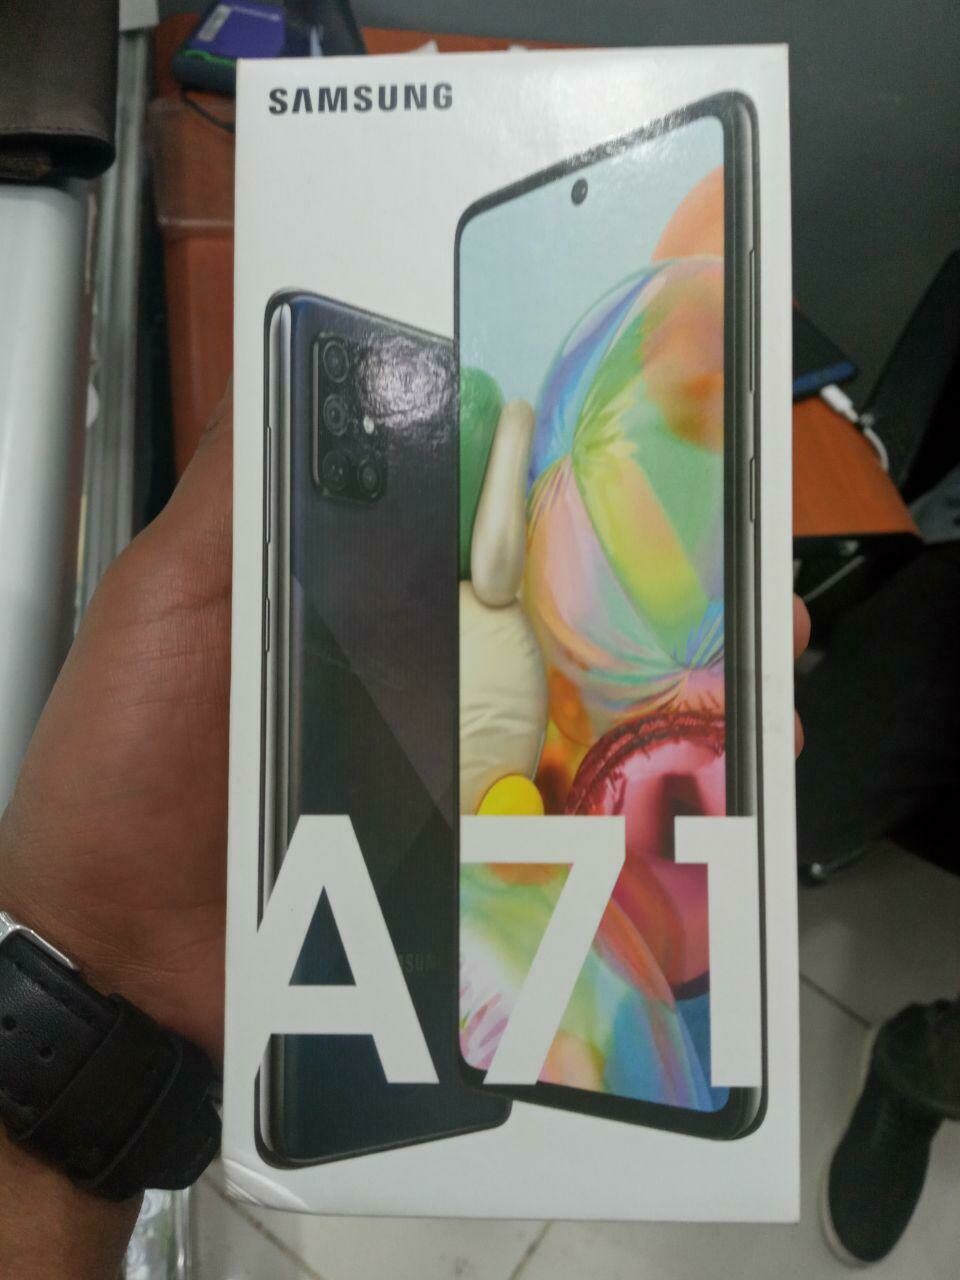 Samsung A71 2020 product